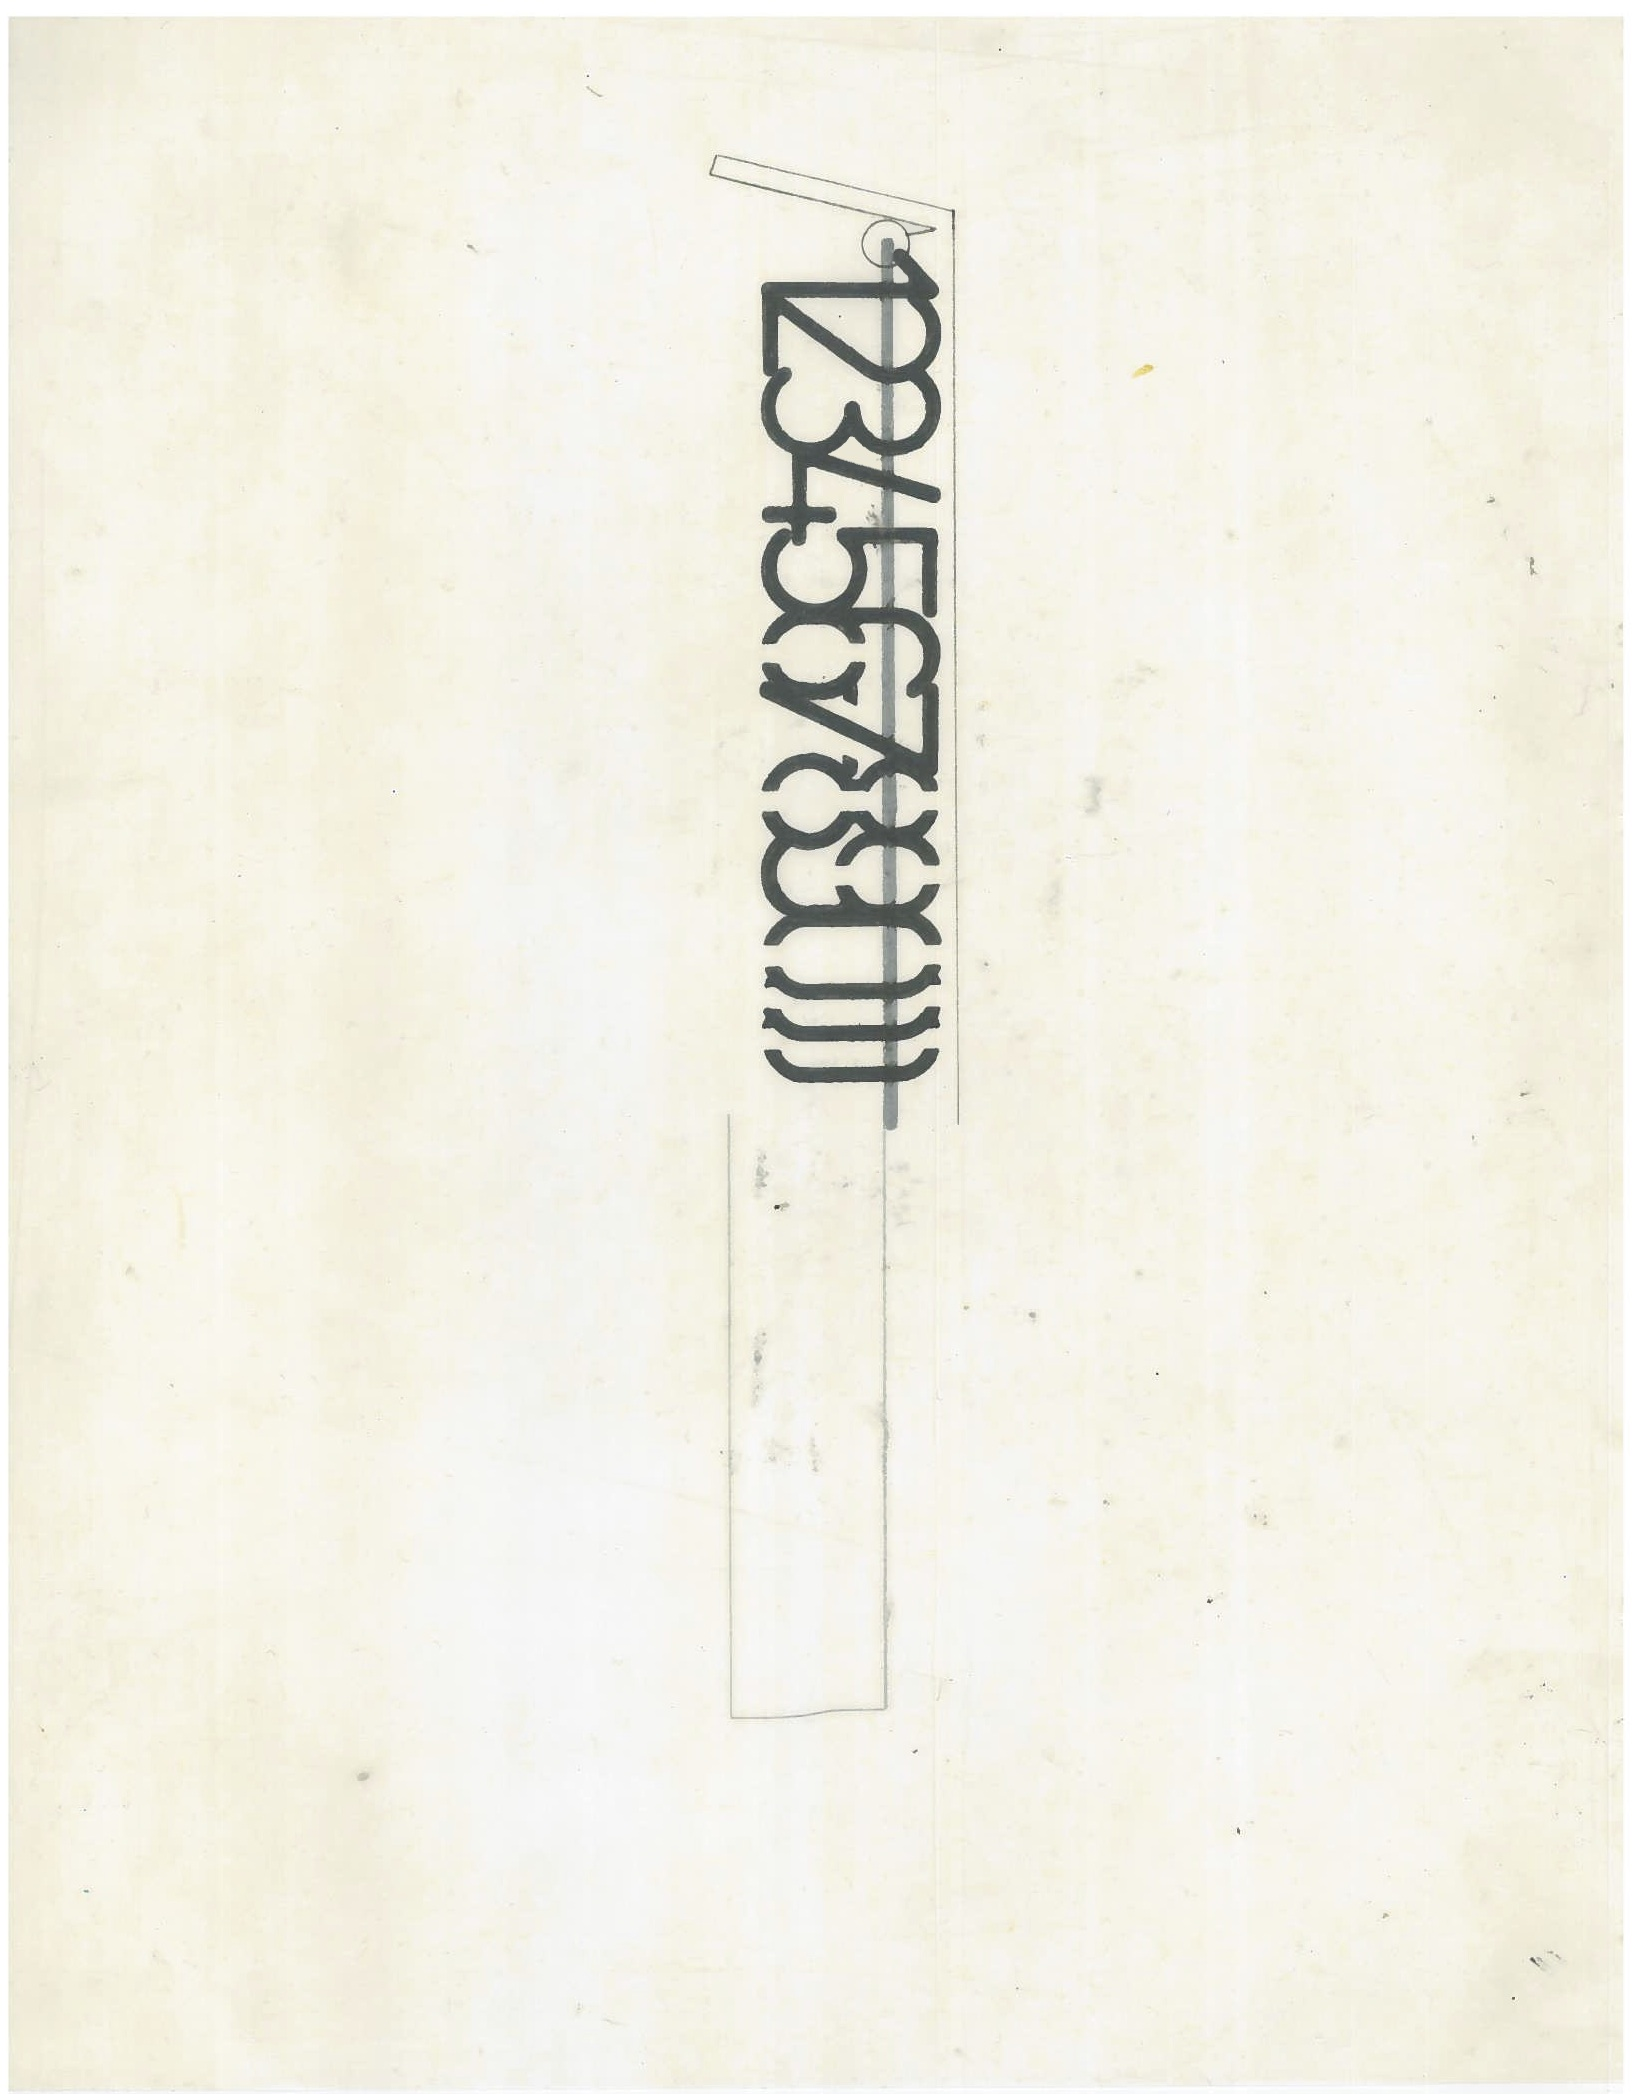 Untitled (the city, observations 23B)  Pencil on oiled fabriano paper  279mm x 216mm  December 2013